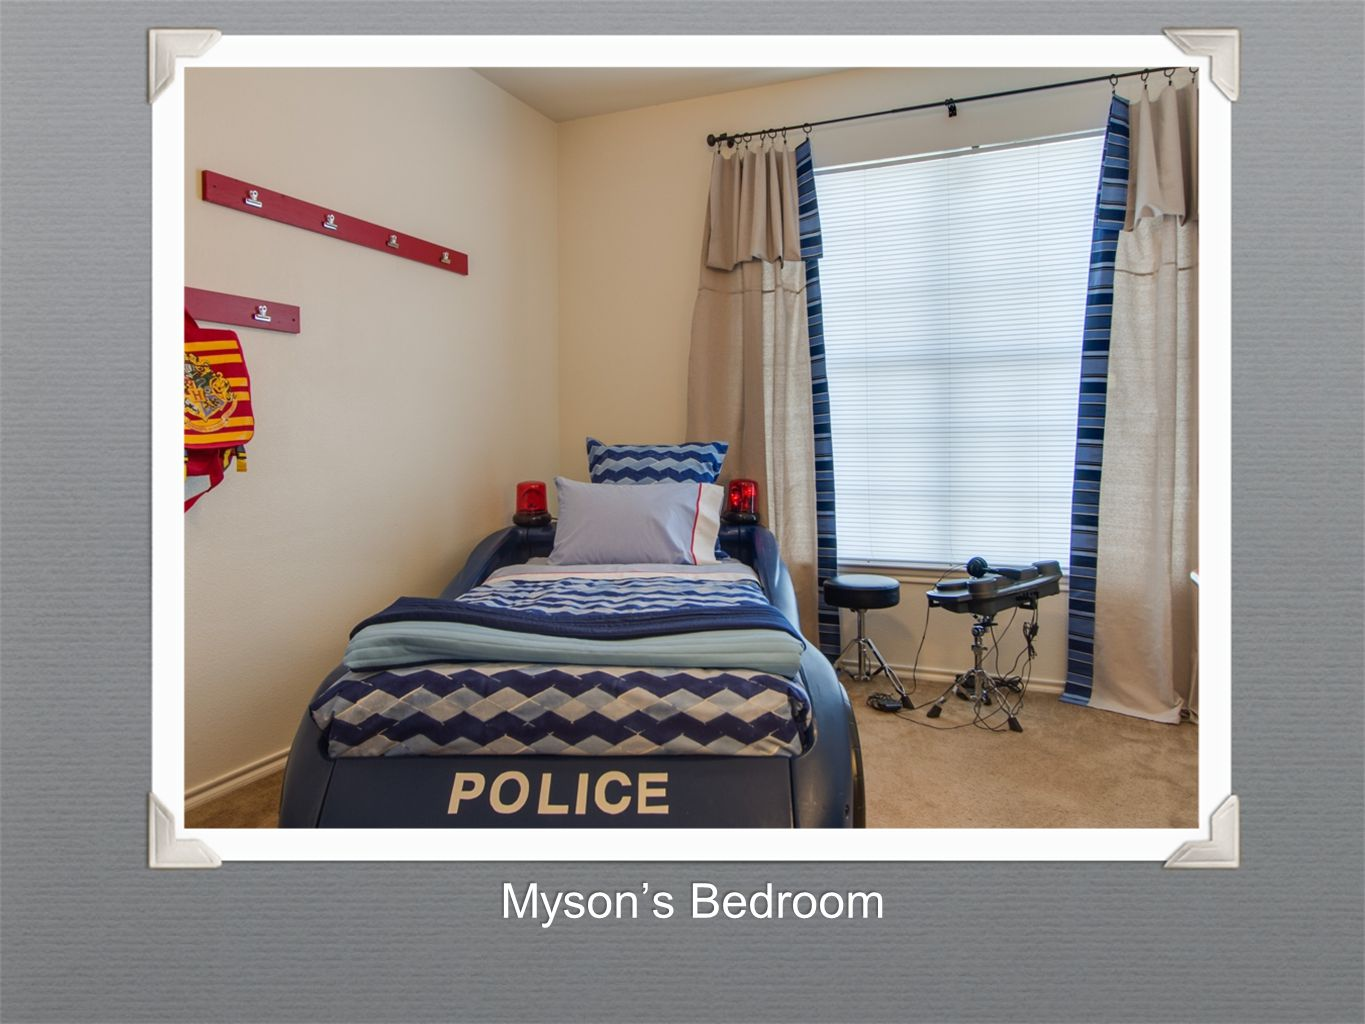 Myson's Bedroom